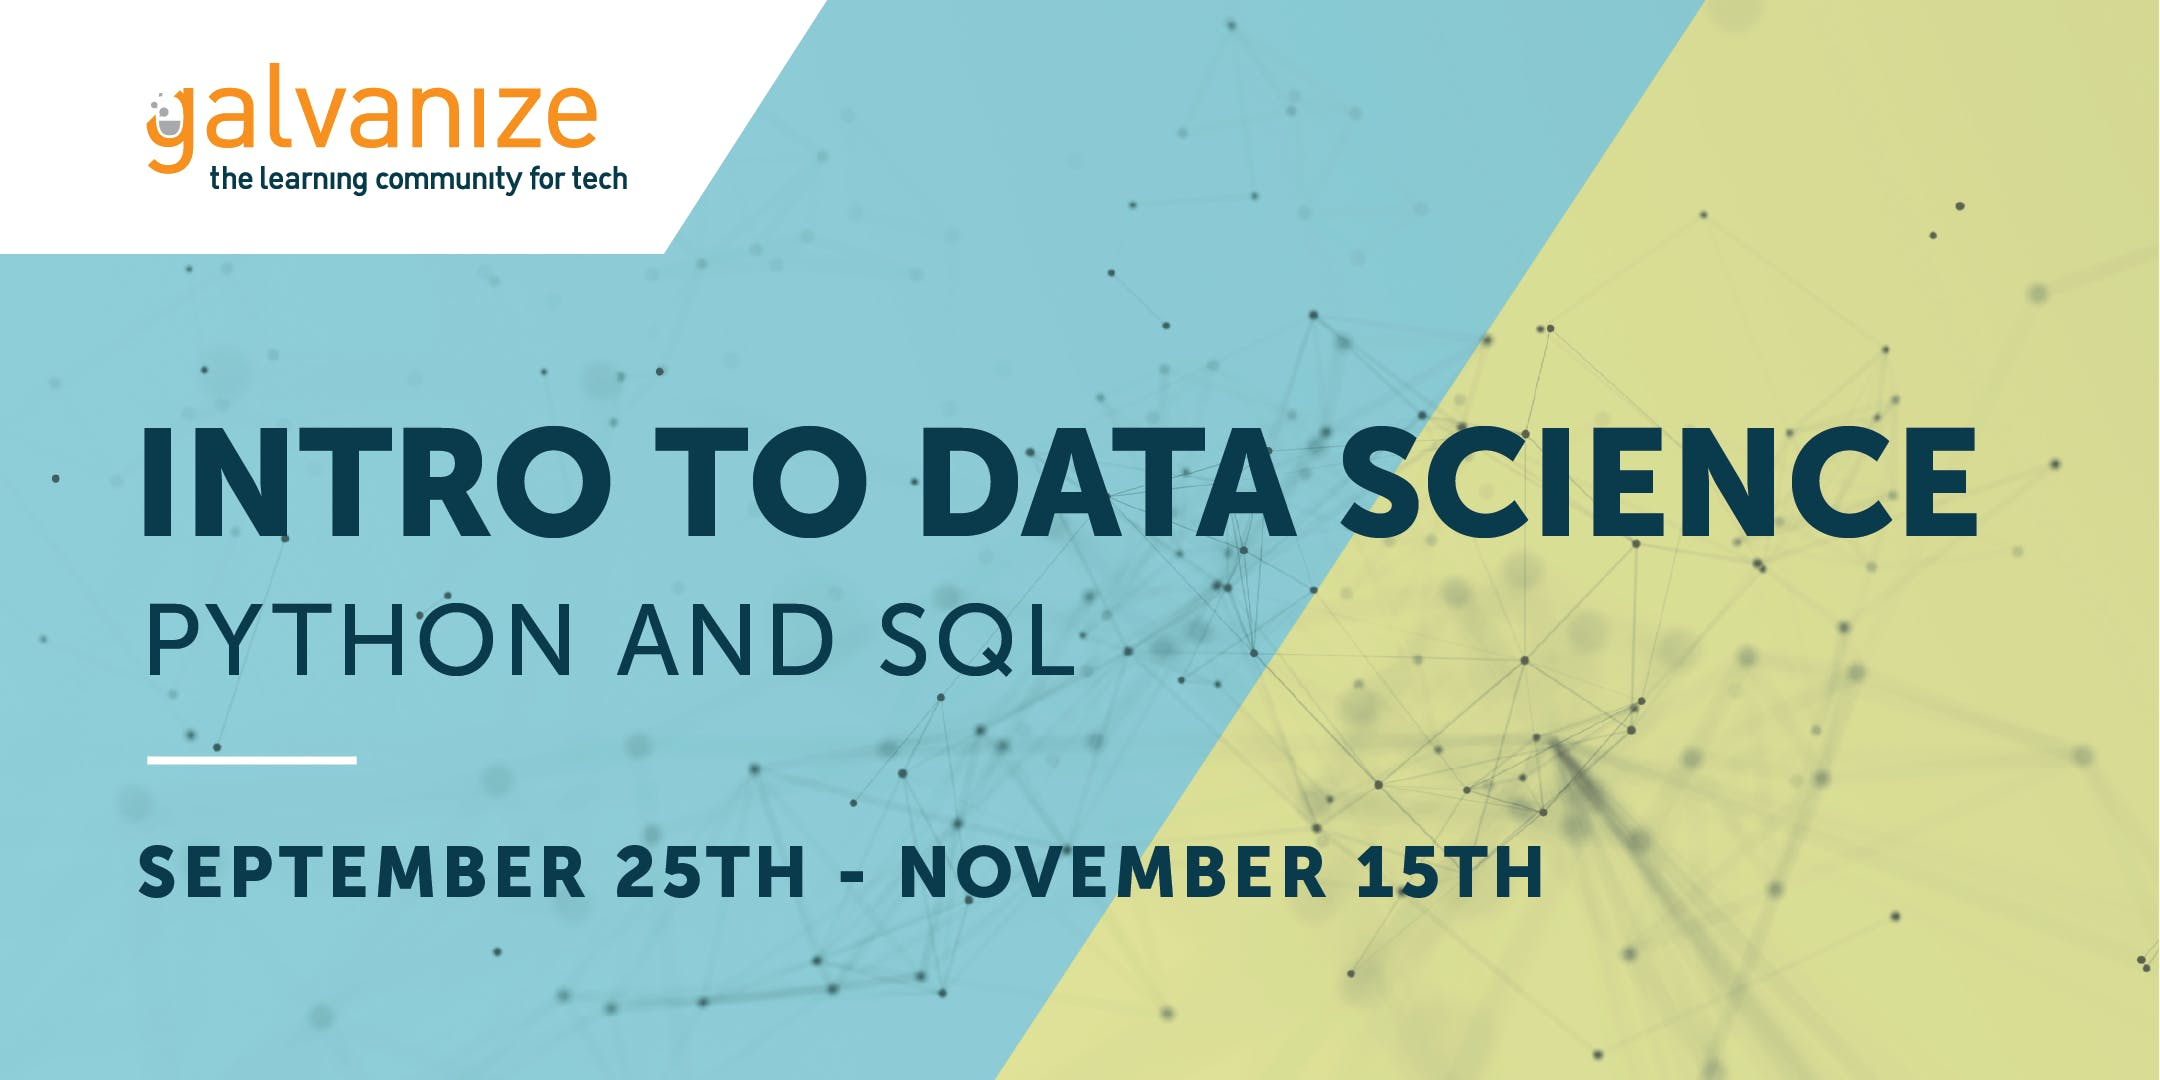 Intro to Data Science: Python and SQL (9/25/18 - 11/15/18)